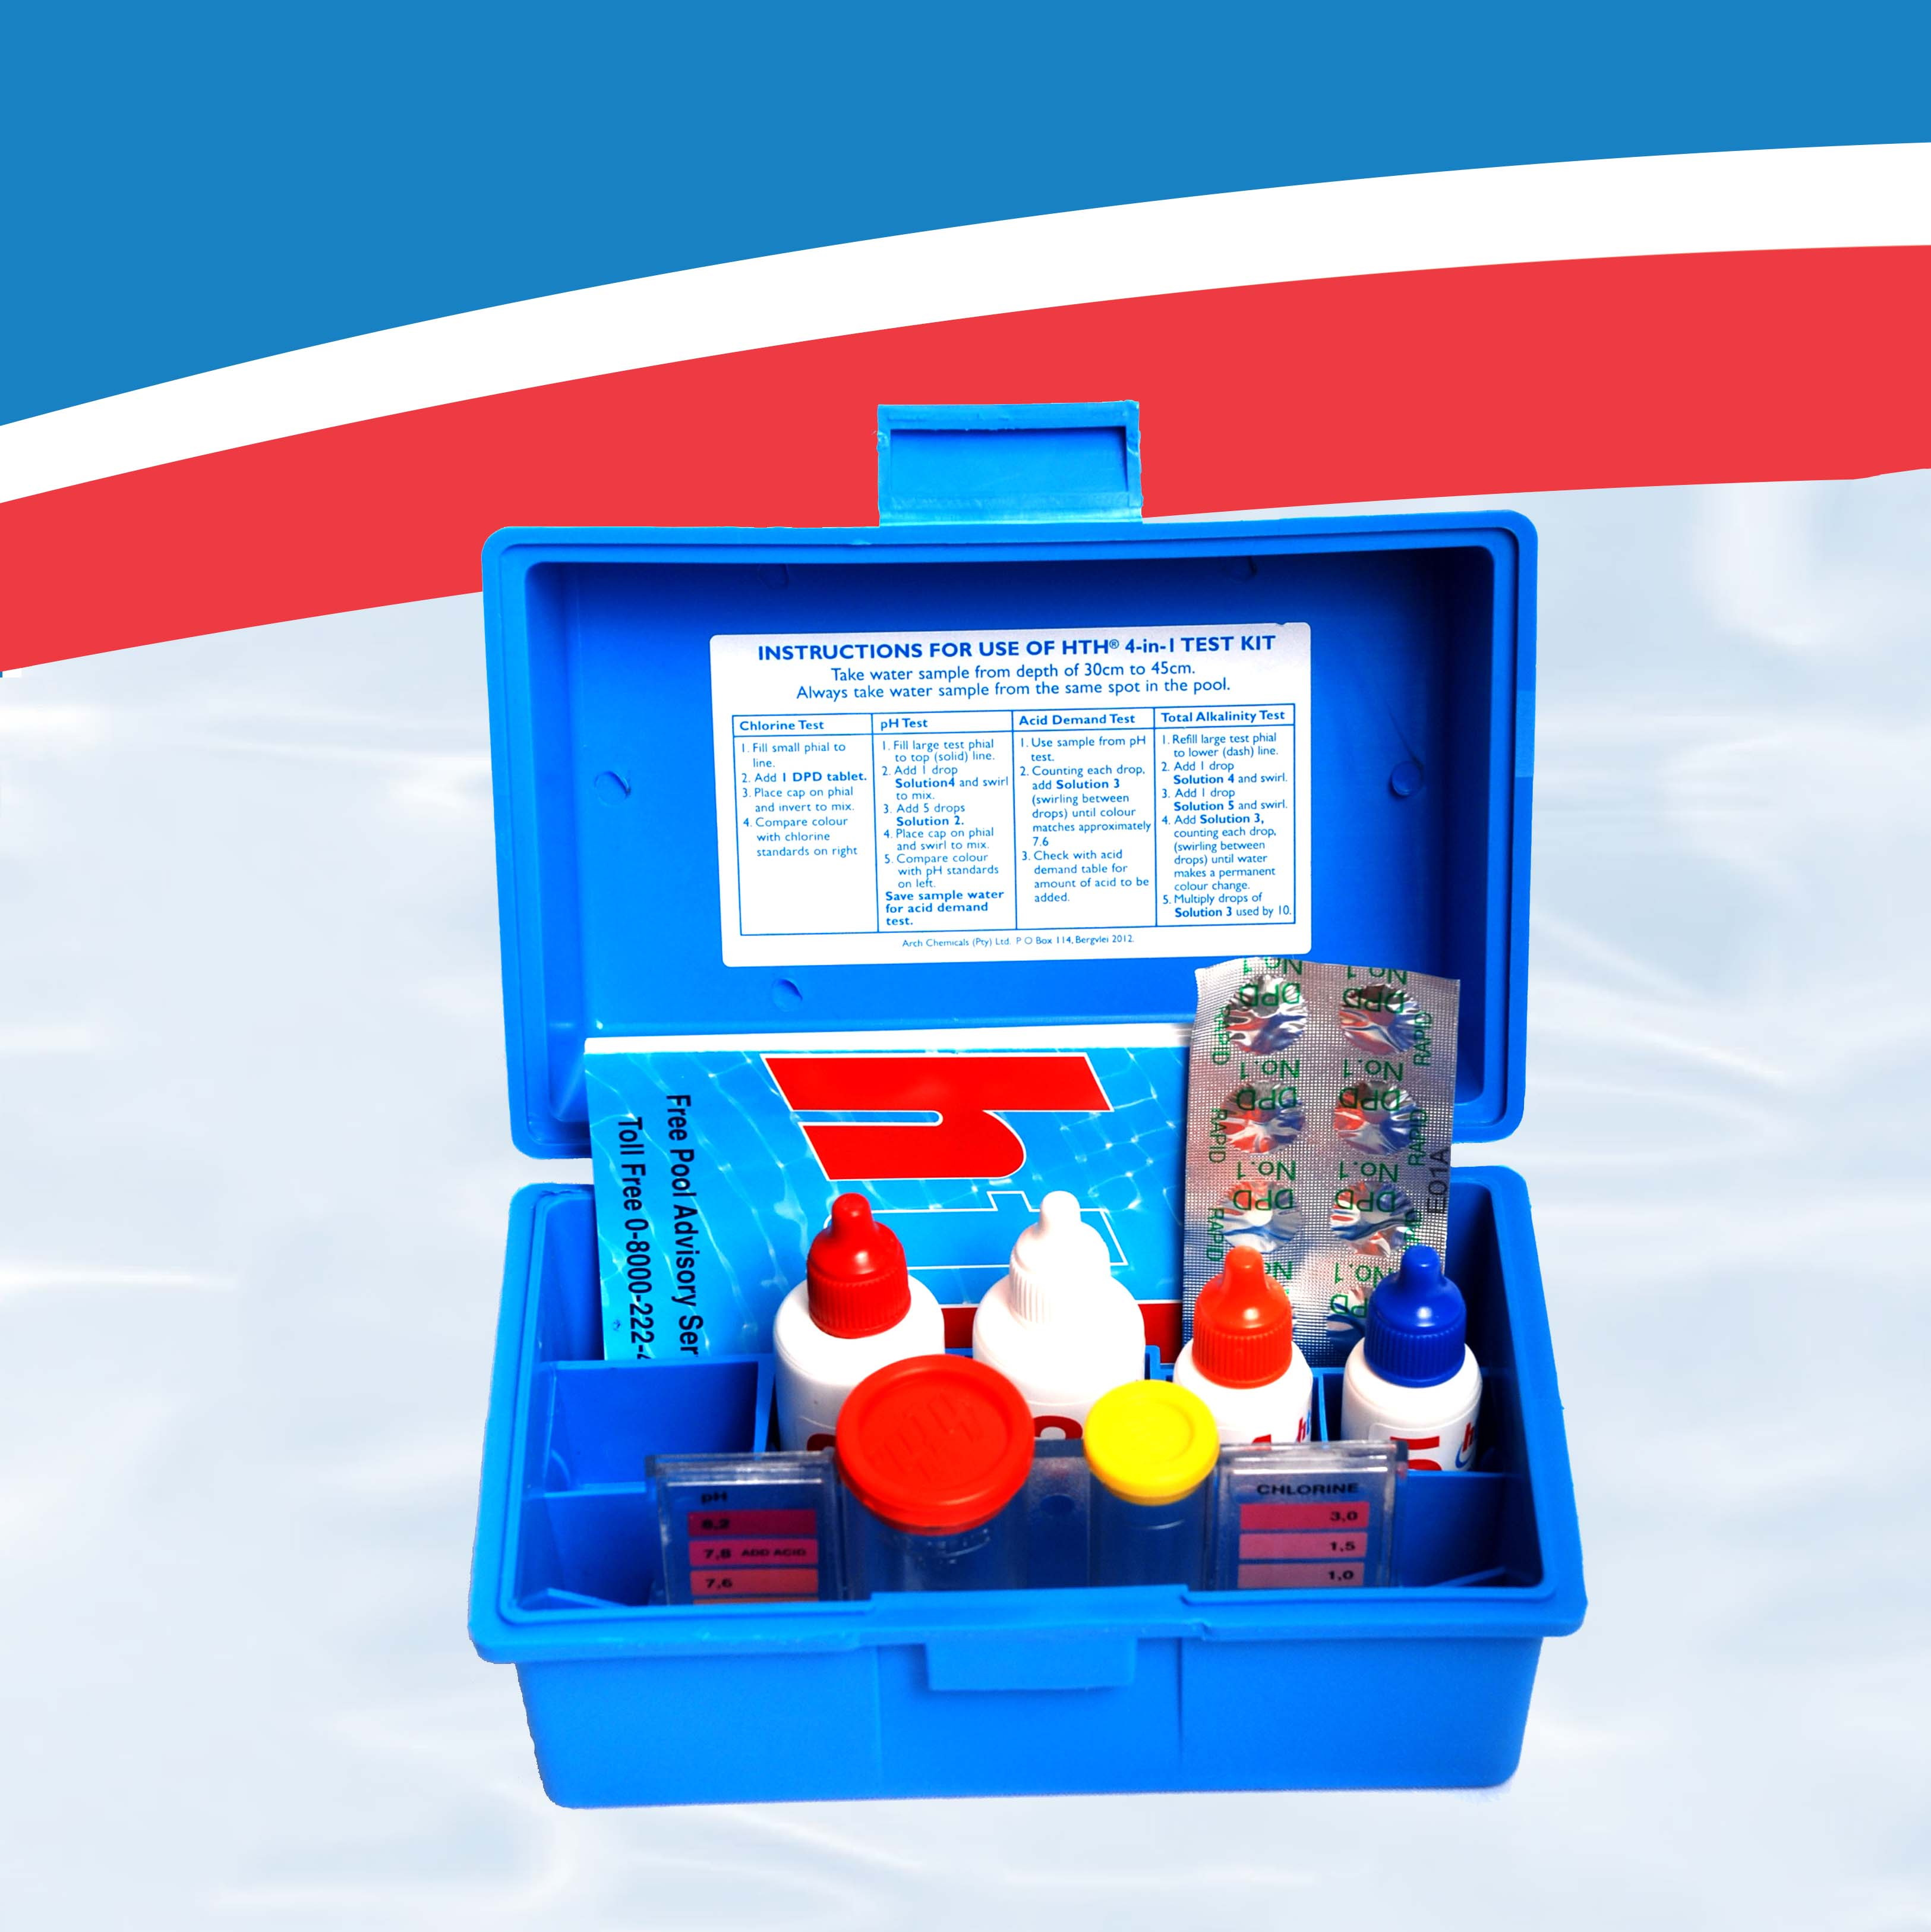 Manual water test kit 4 in 1 hyper pool group - Hth swimming pool test kit instructions ...